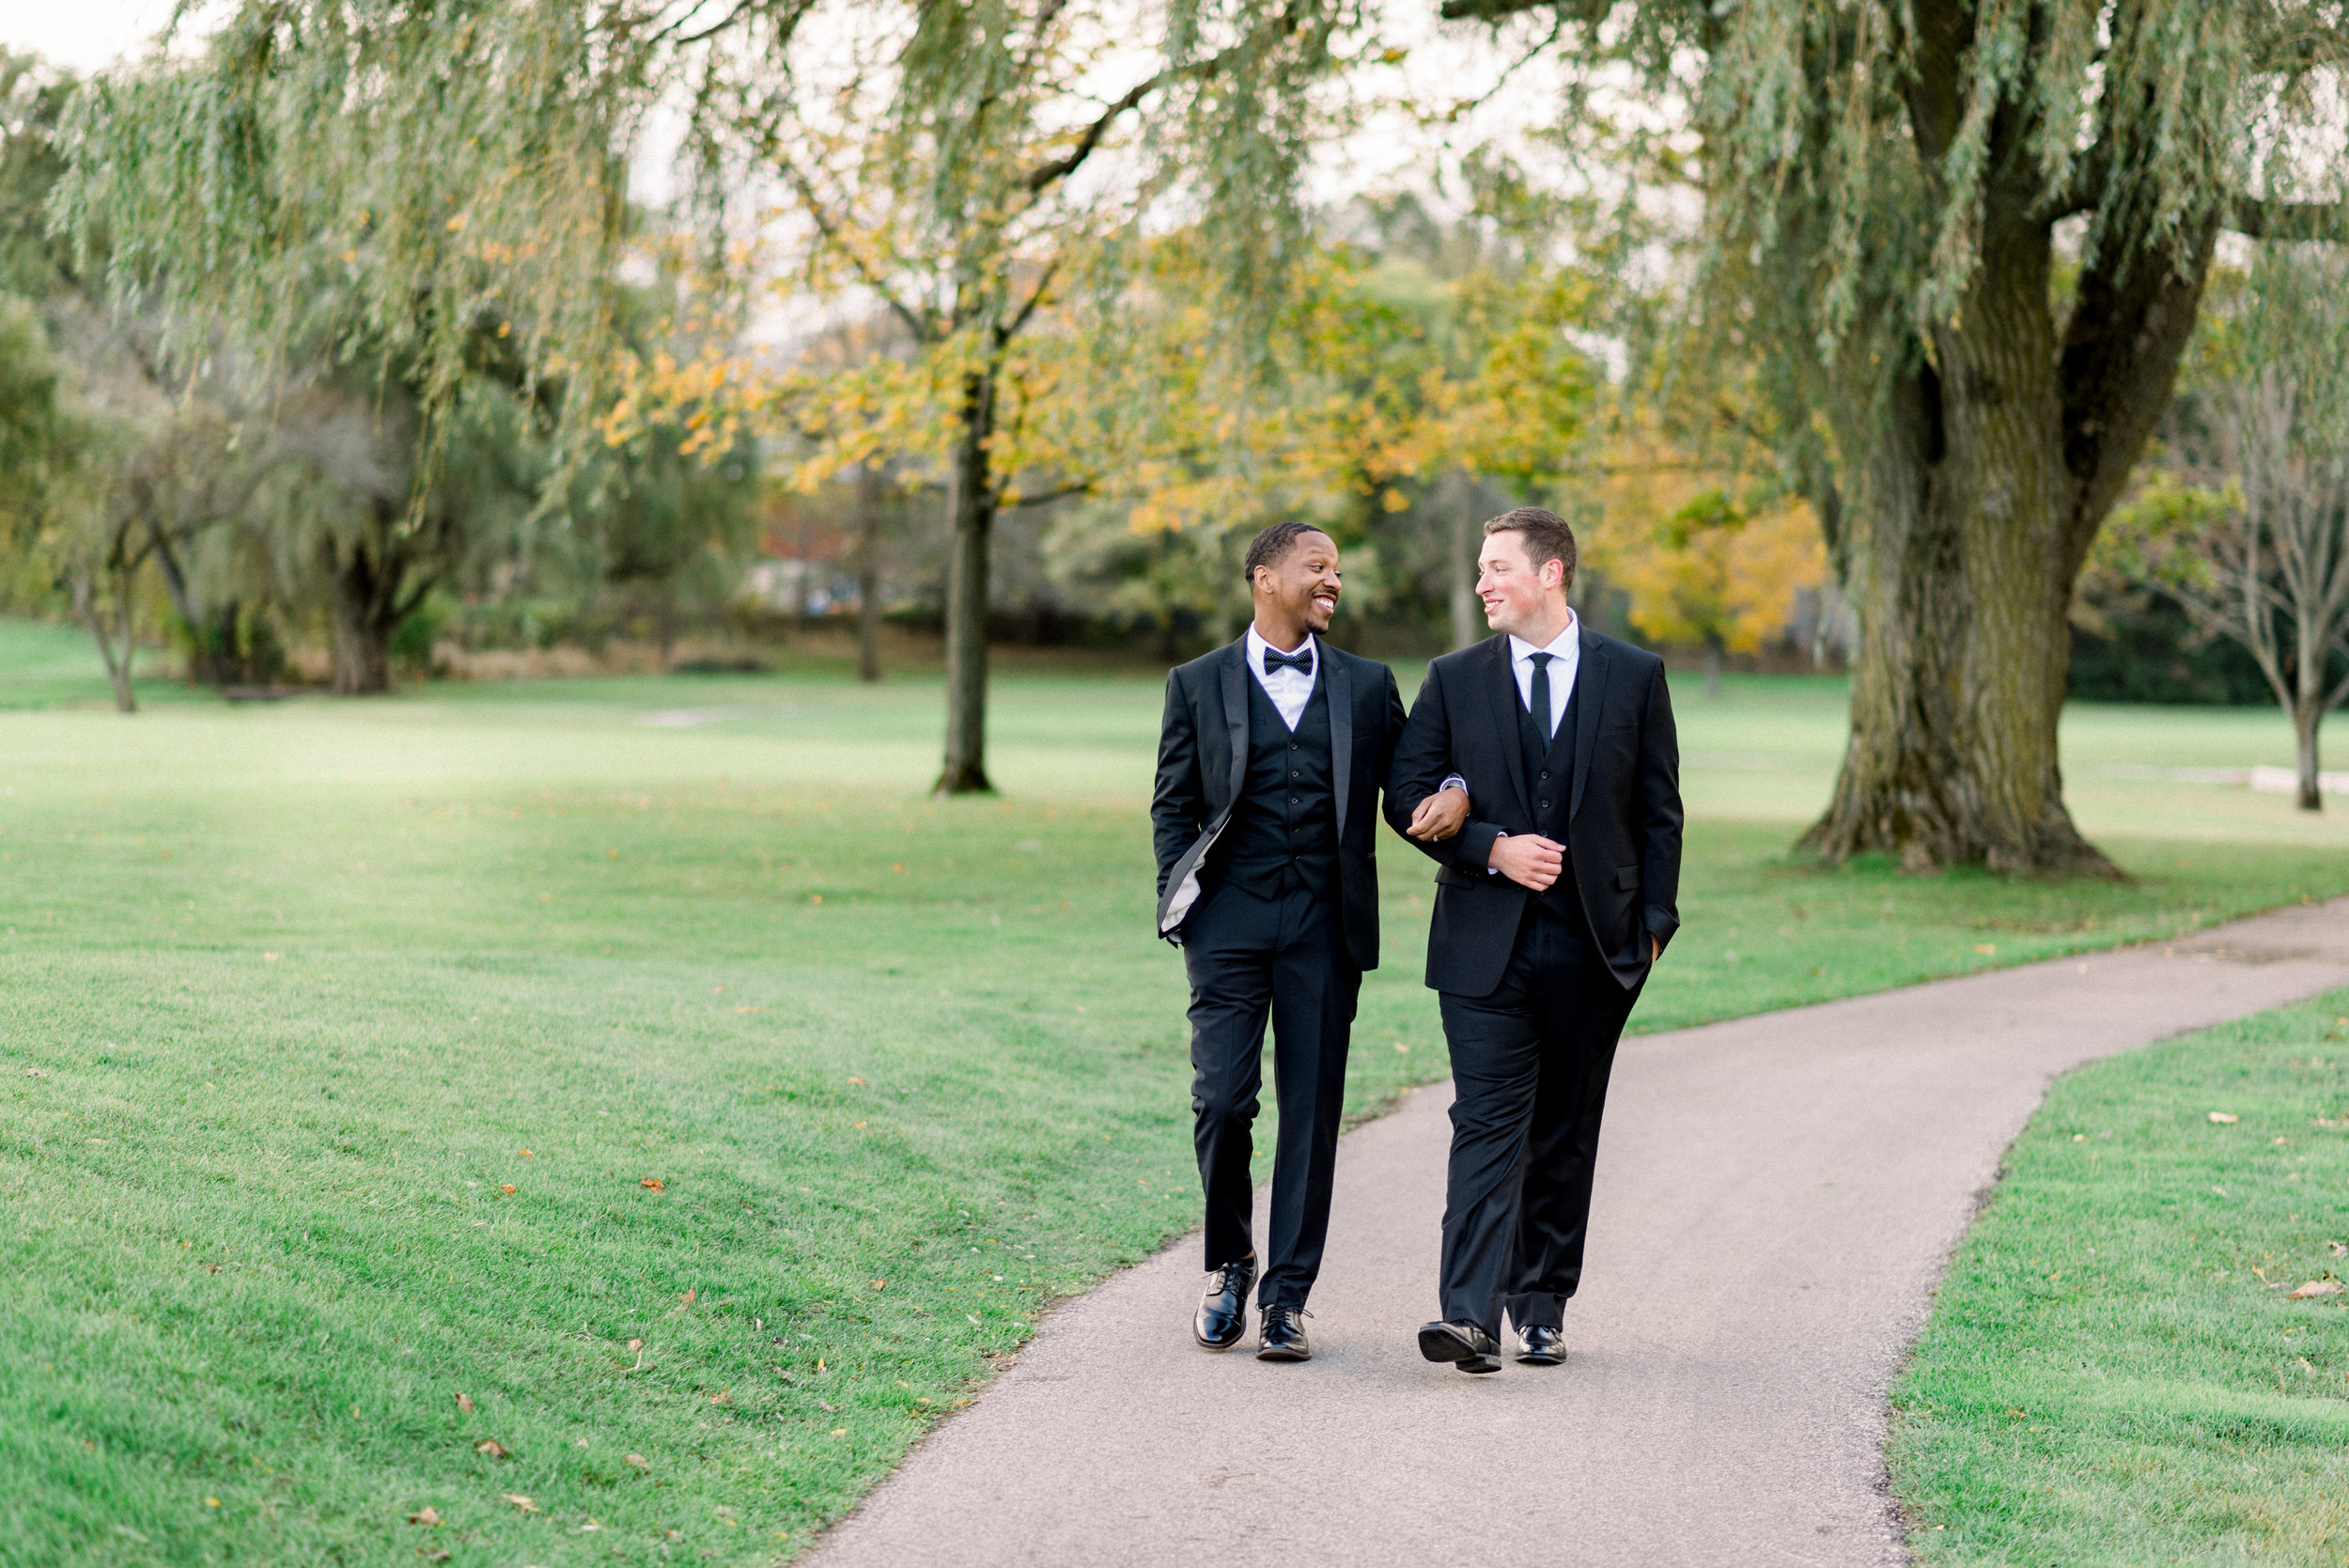 River Club of Mequon - Mequon WI - LGBT - Gay -Styled Shoot-115.jpg